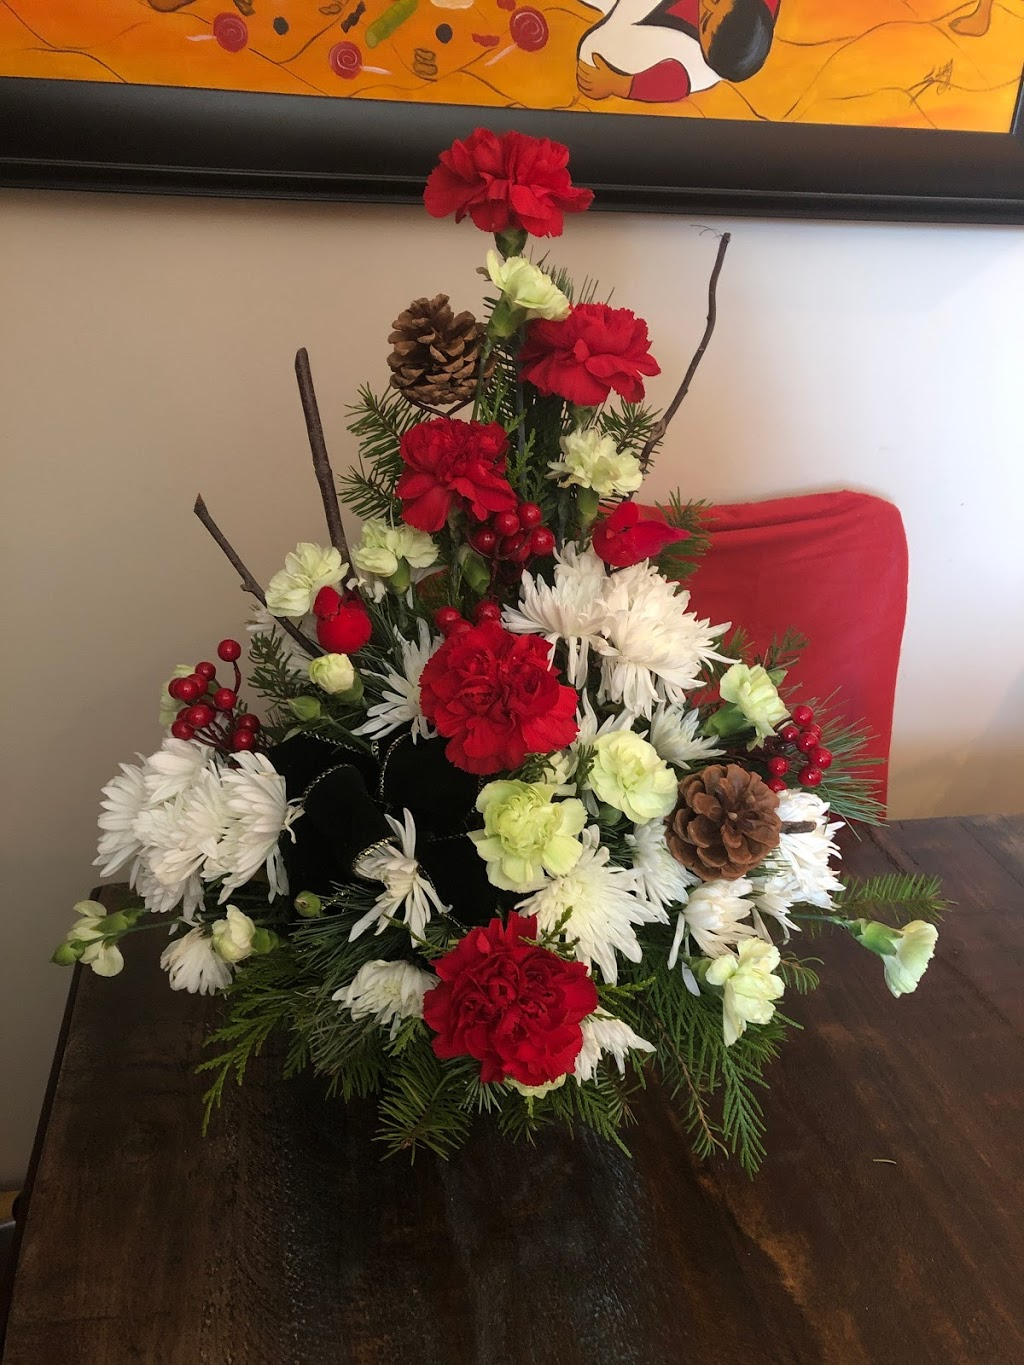 Flowers On 50th | florist | 4008 50 St NW, Edmonton, AB T6L 5N3, Canada | 7804637673 OR +1 780-463-7673